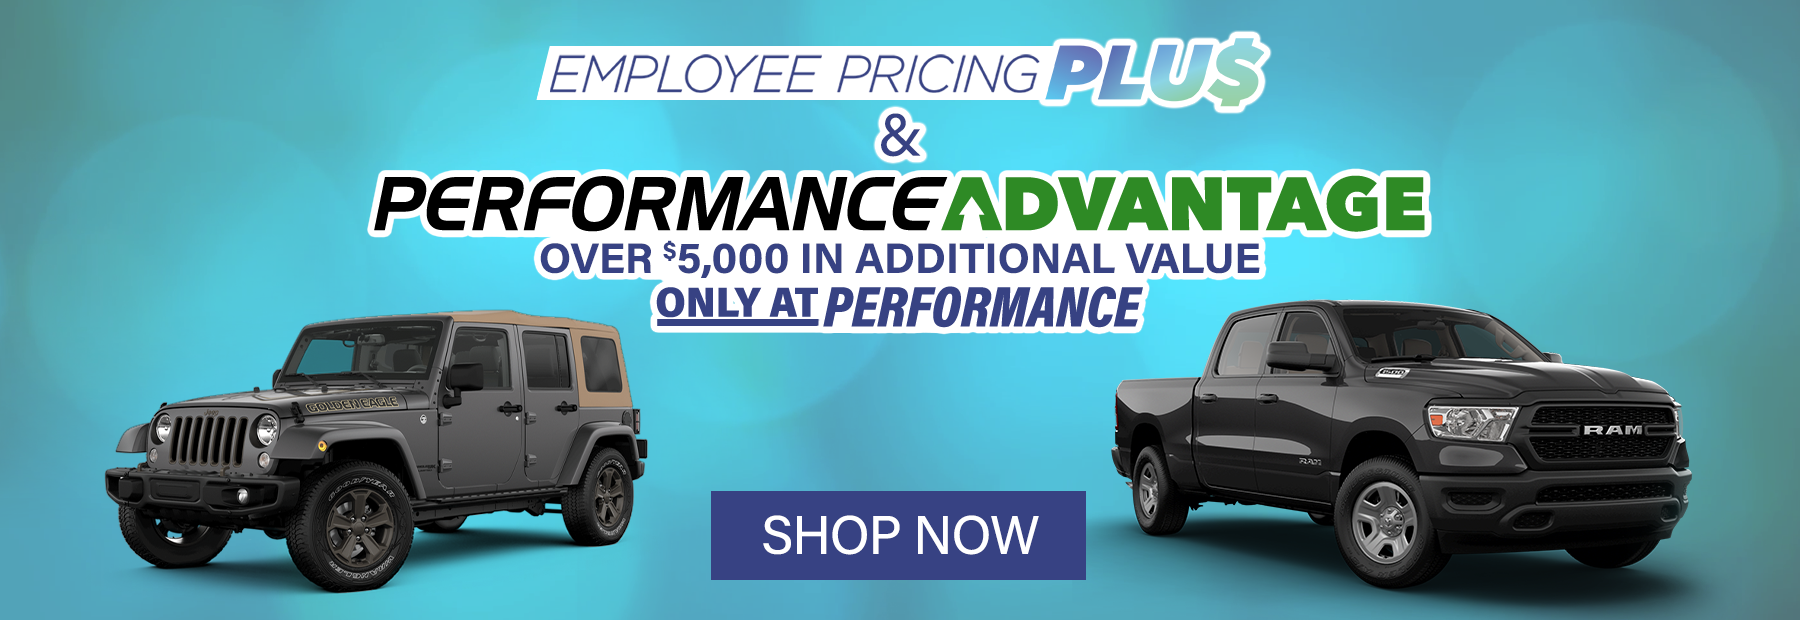 employee-pricing-event-dayton-ohio